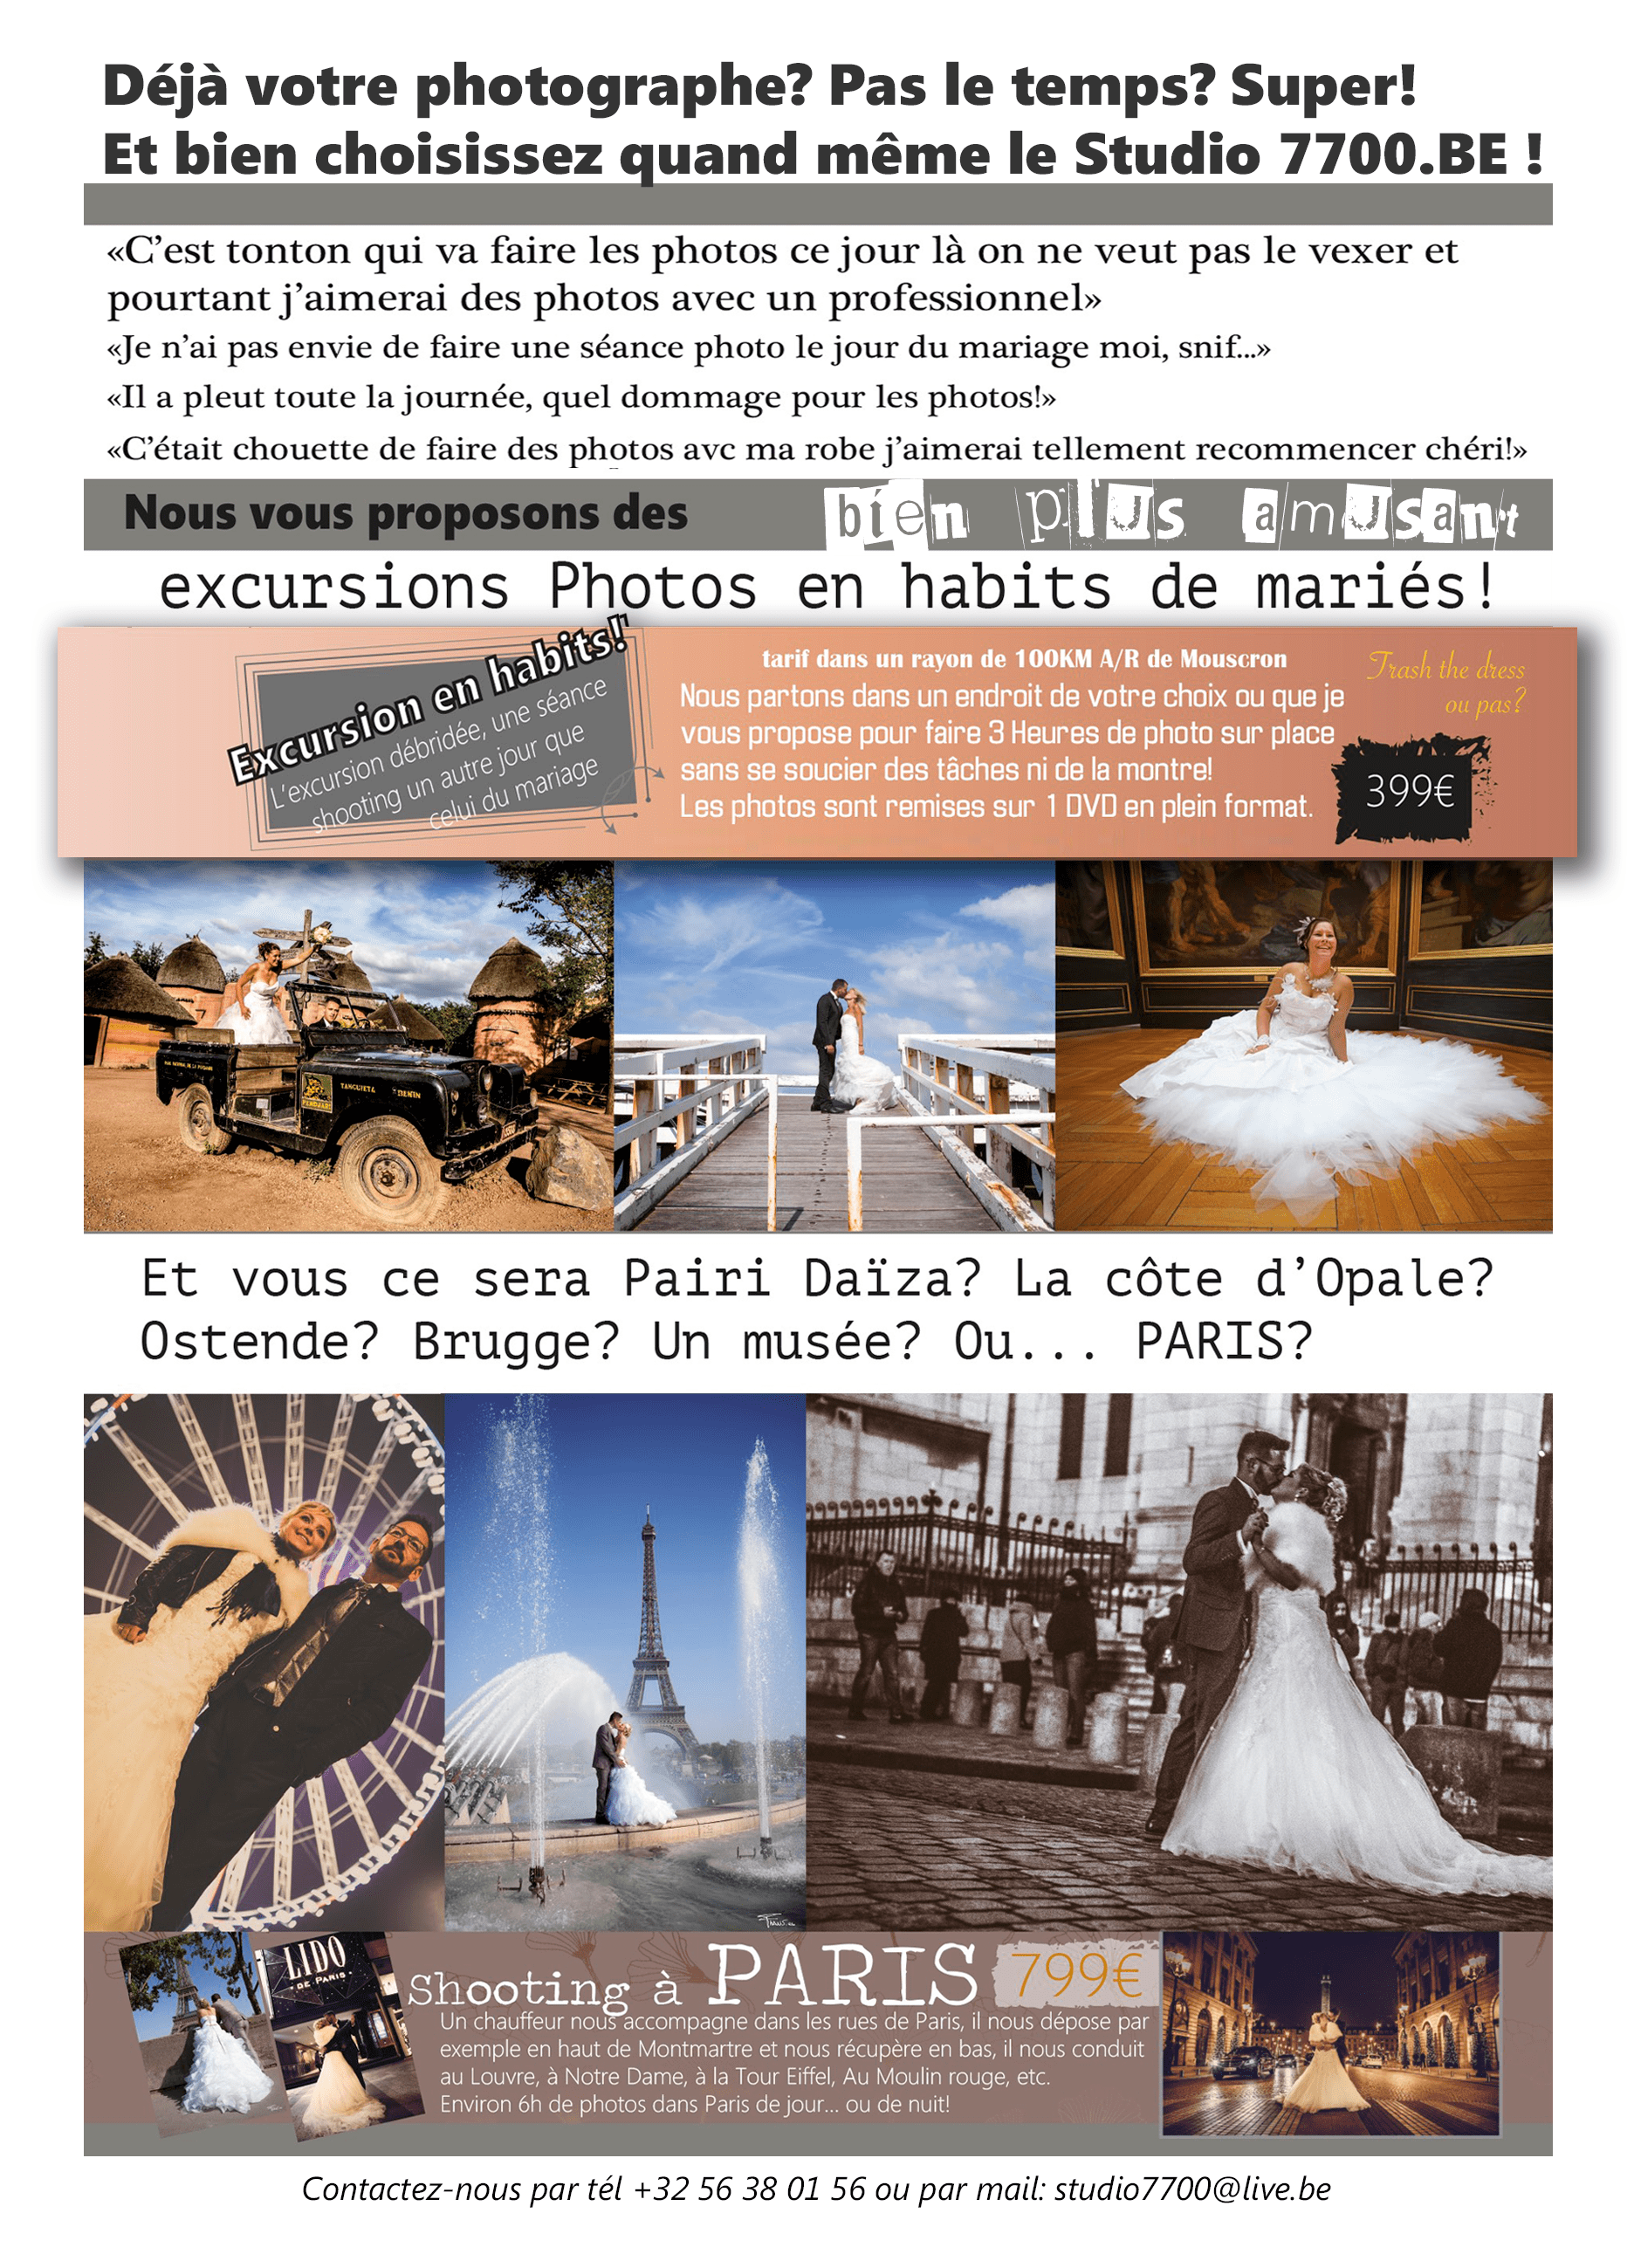 Excursions photos en habits de mariés avec le studio 7700 BE